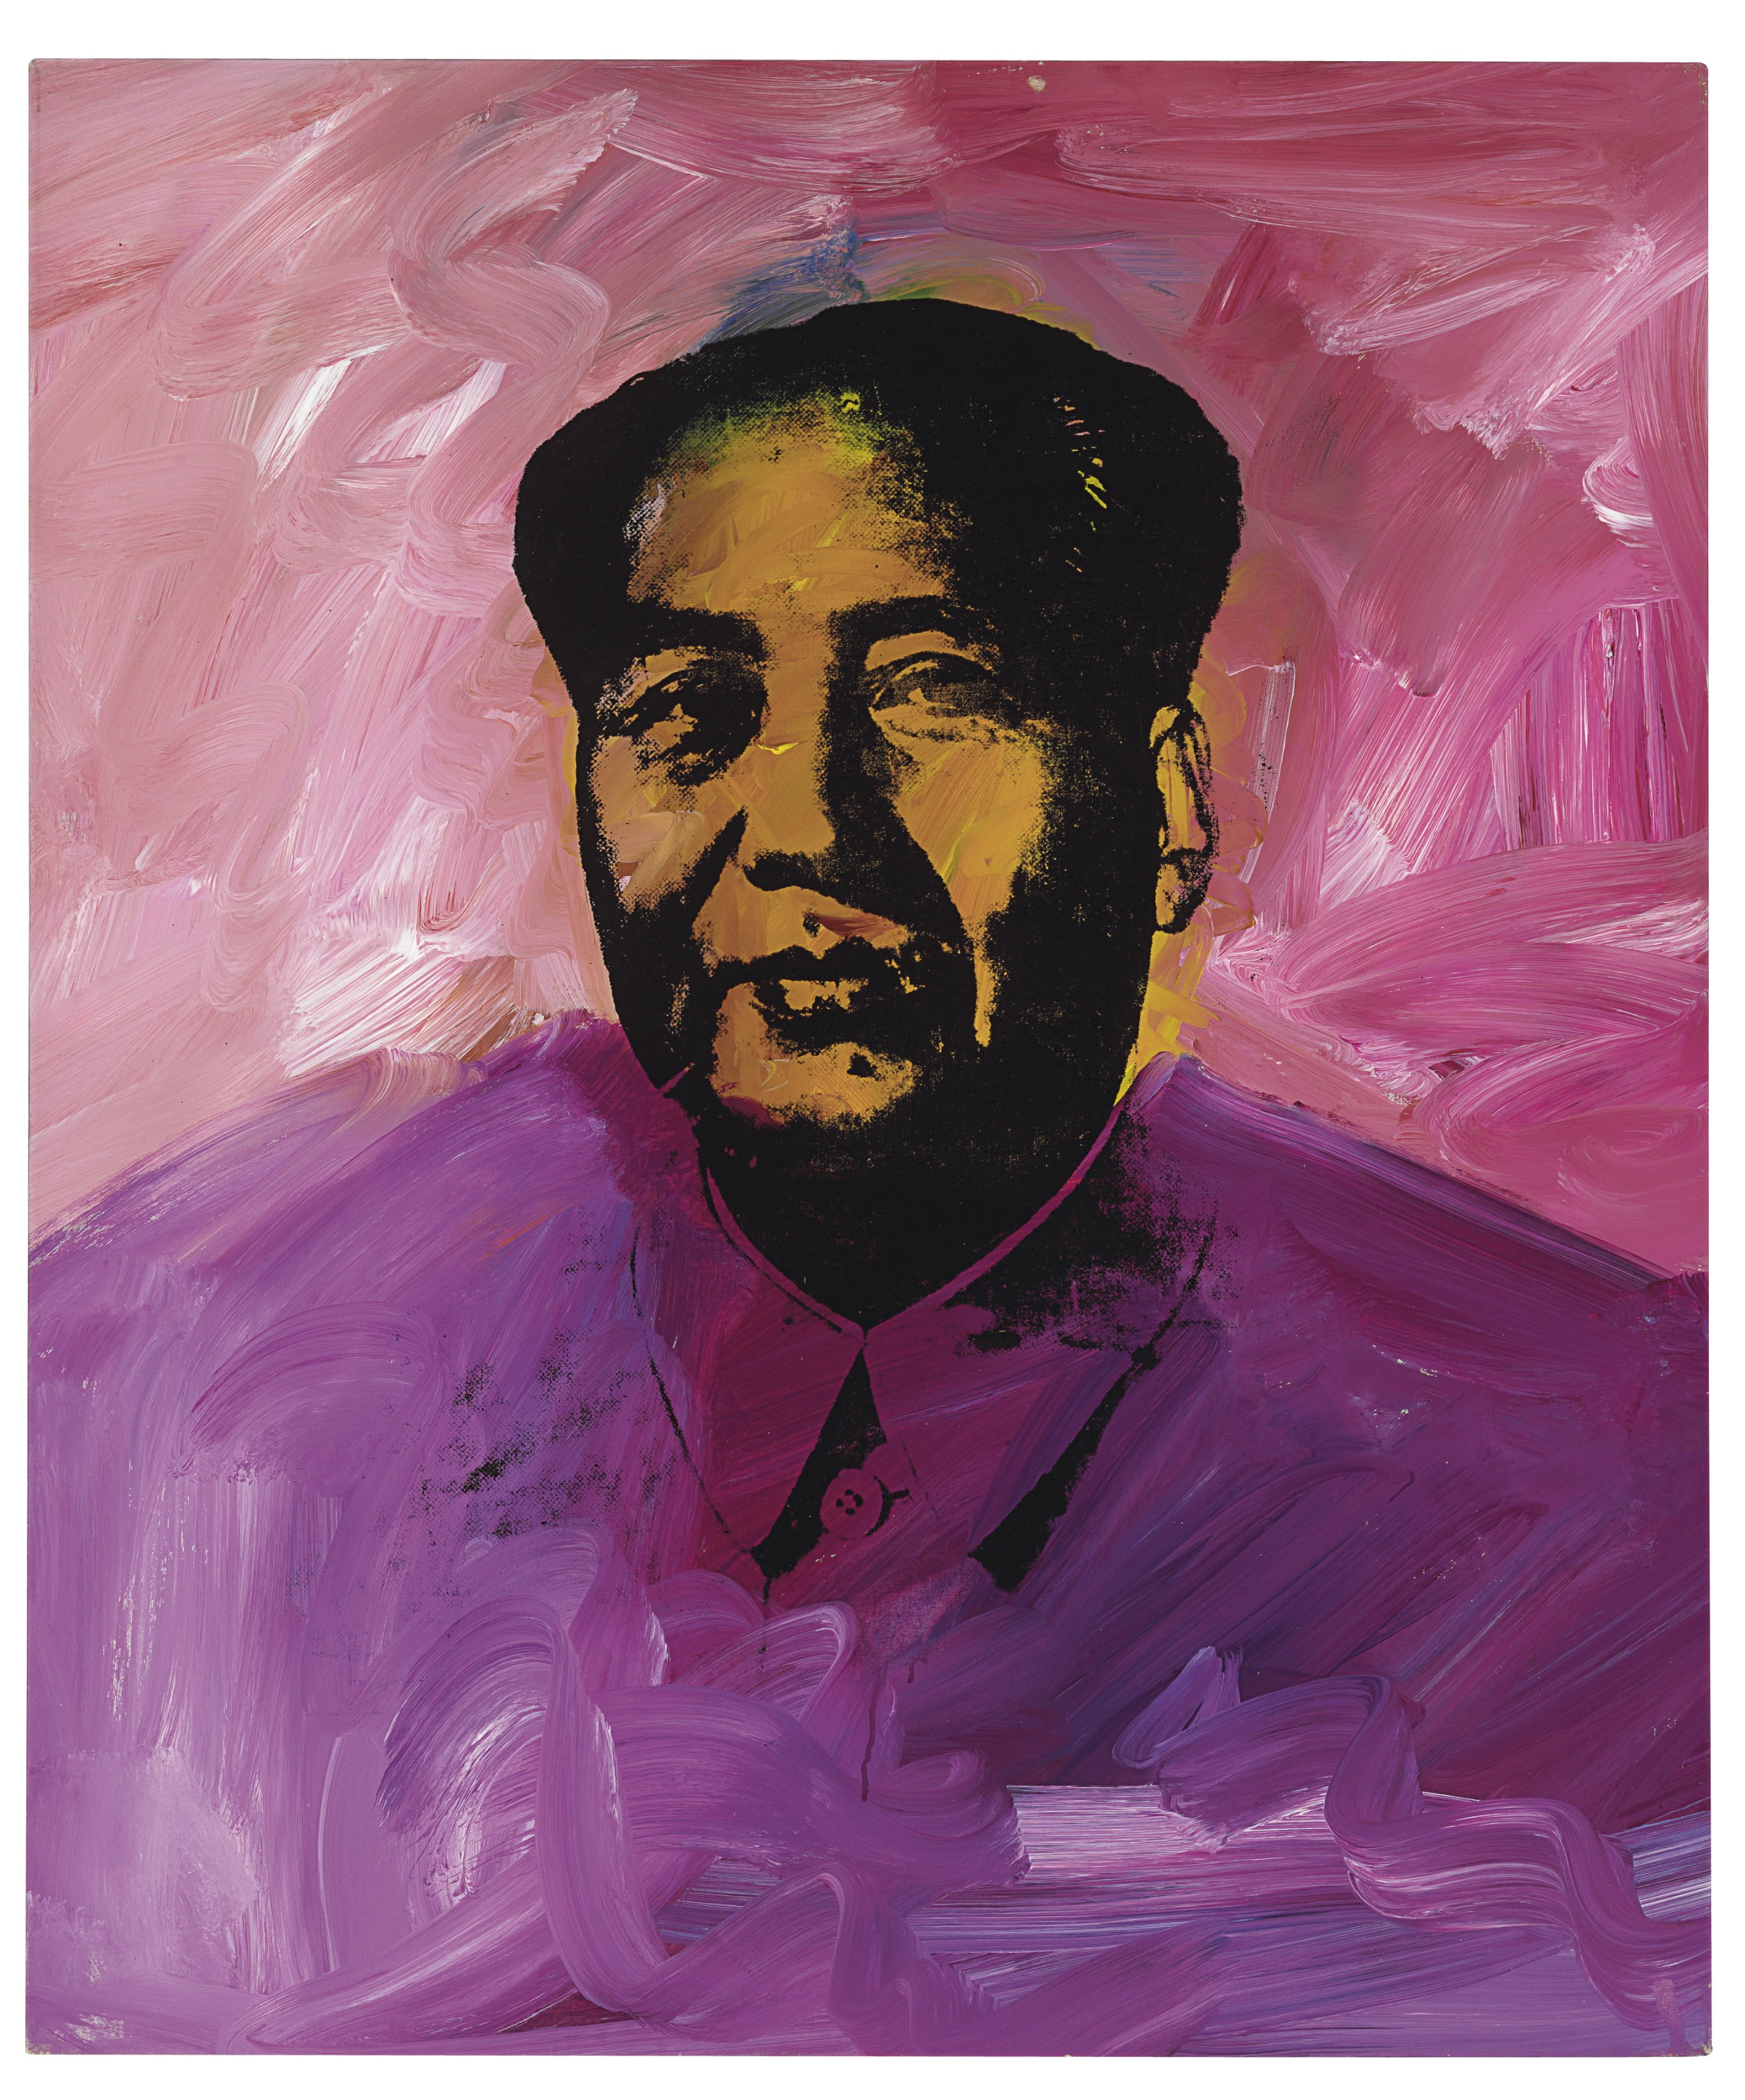 Andy Warhol 1928 1987 Mao signed and dated Andy Warhol 73